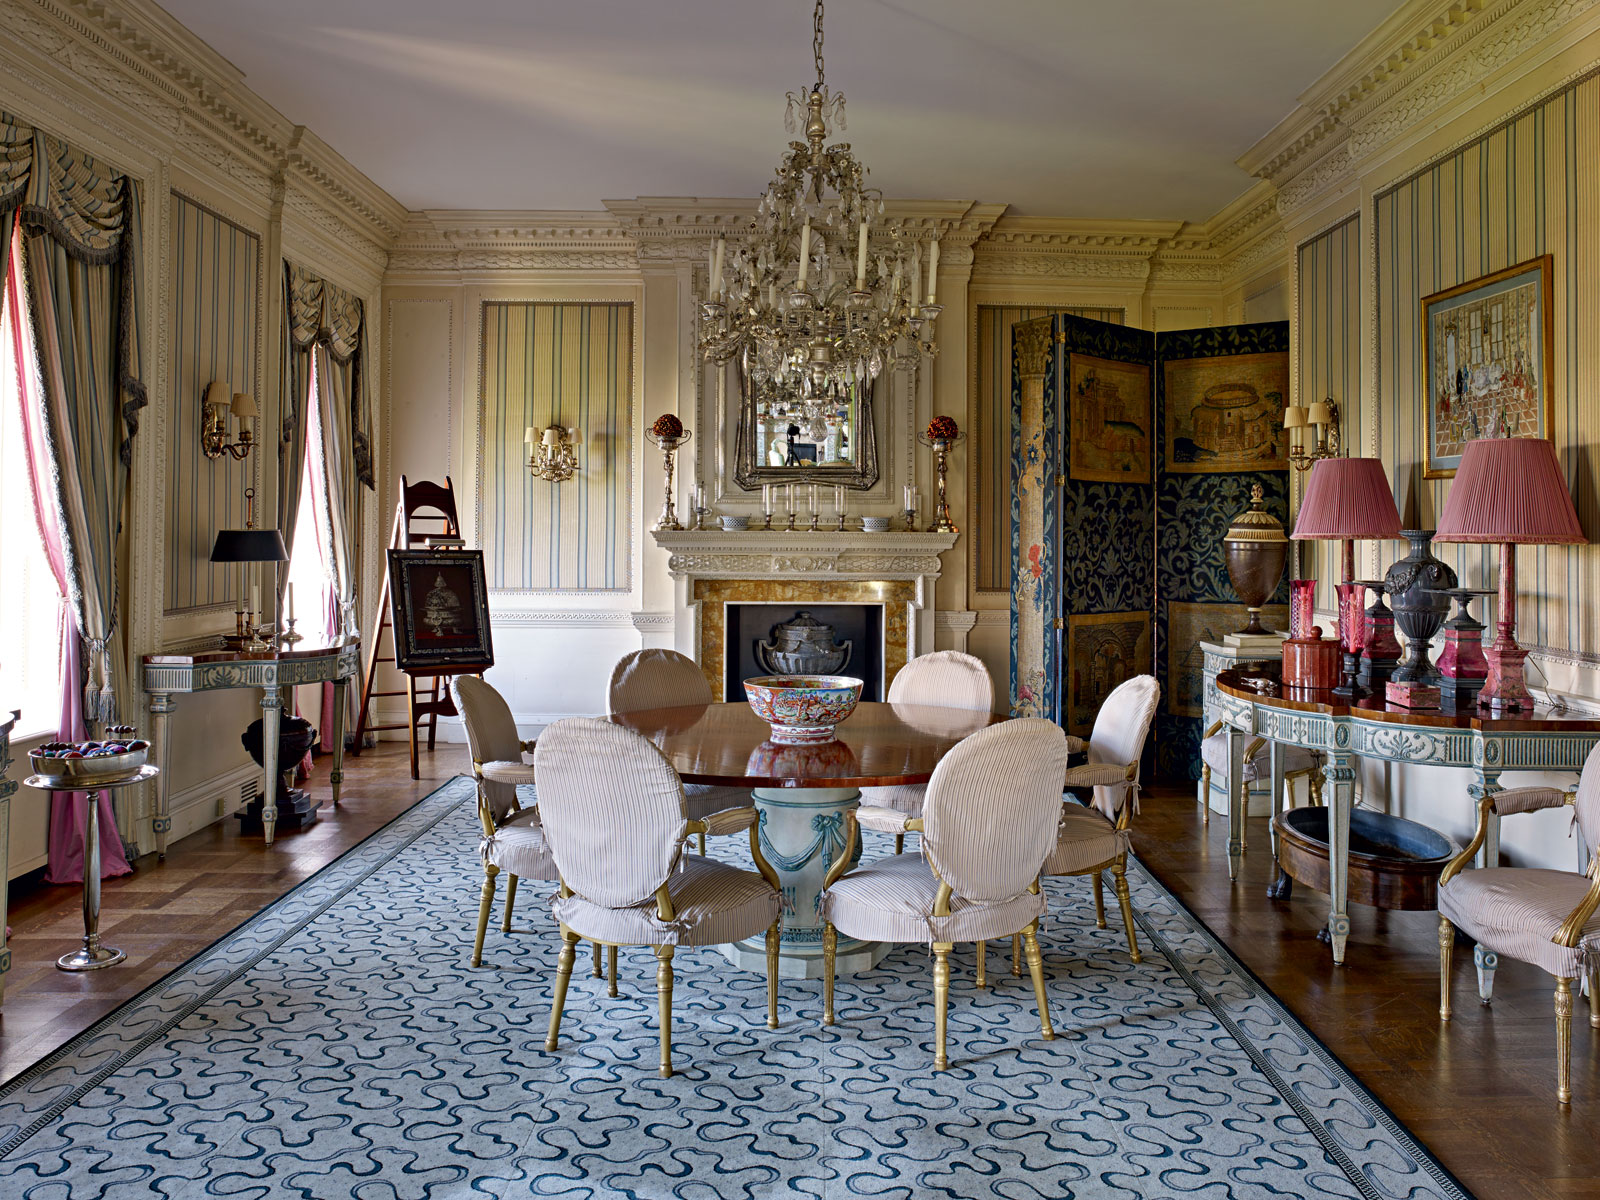 This is the largest existing original apartment on Fifth Avenue, and of all its 20 rooms, the 720-squarefoot main living room is the most impressive: it has two fireplaces and windows that afford unchallenged views of Central Park. According to owner Susan Gutfreund, the low windows are the secret to the great views and ample light.